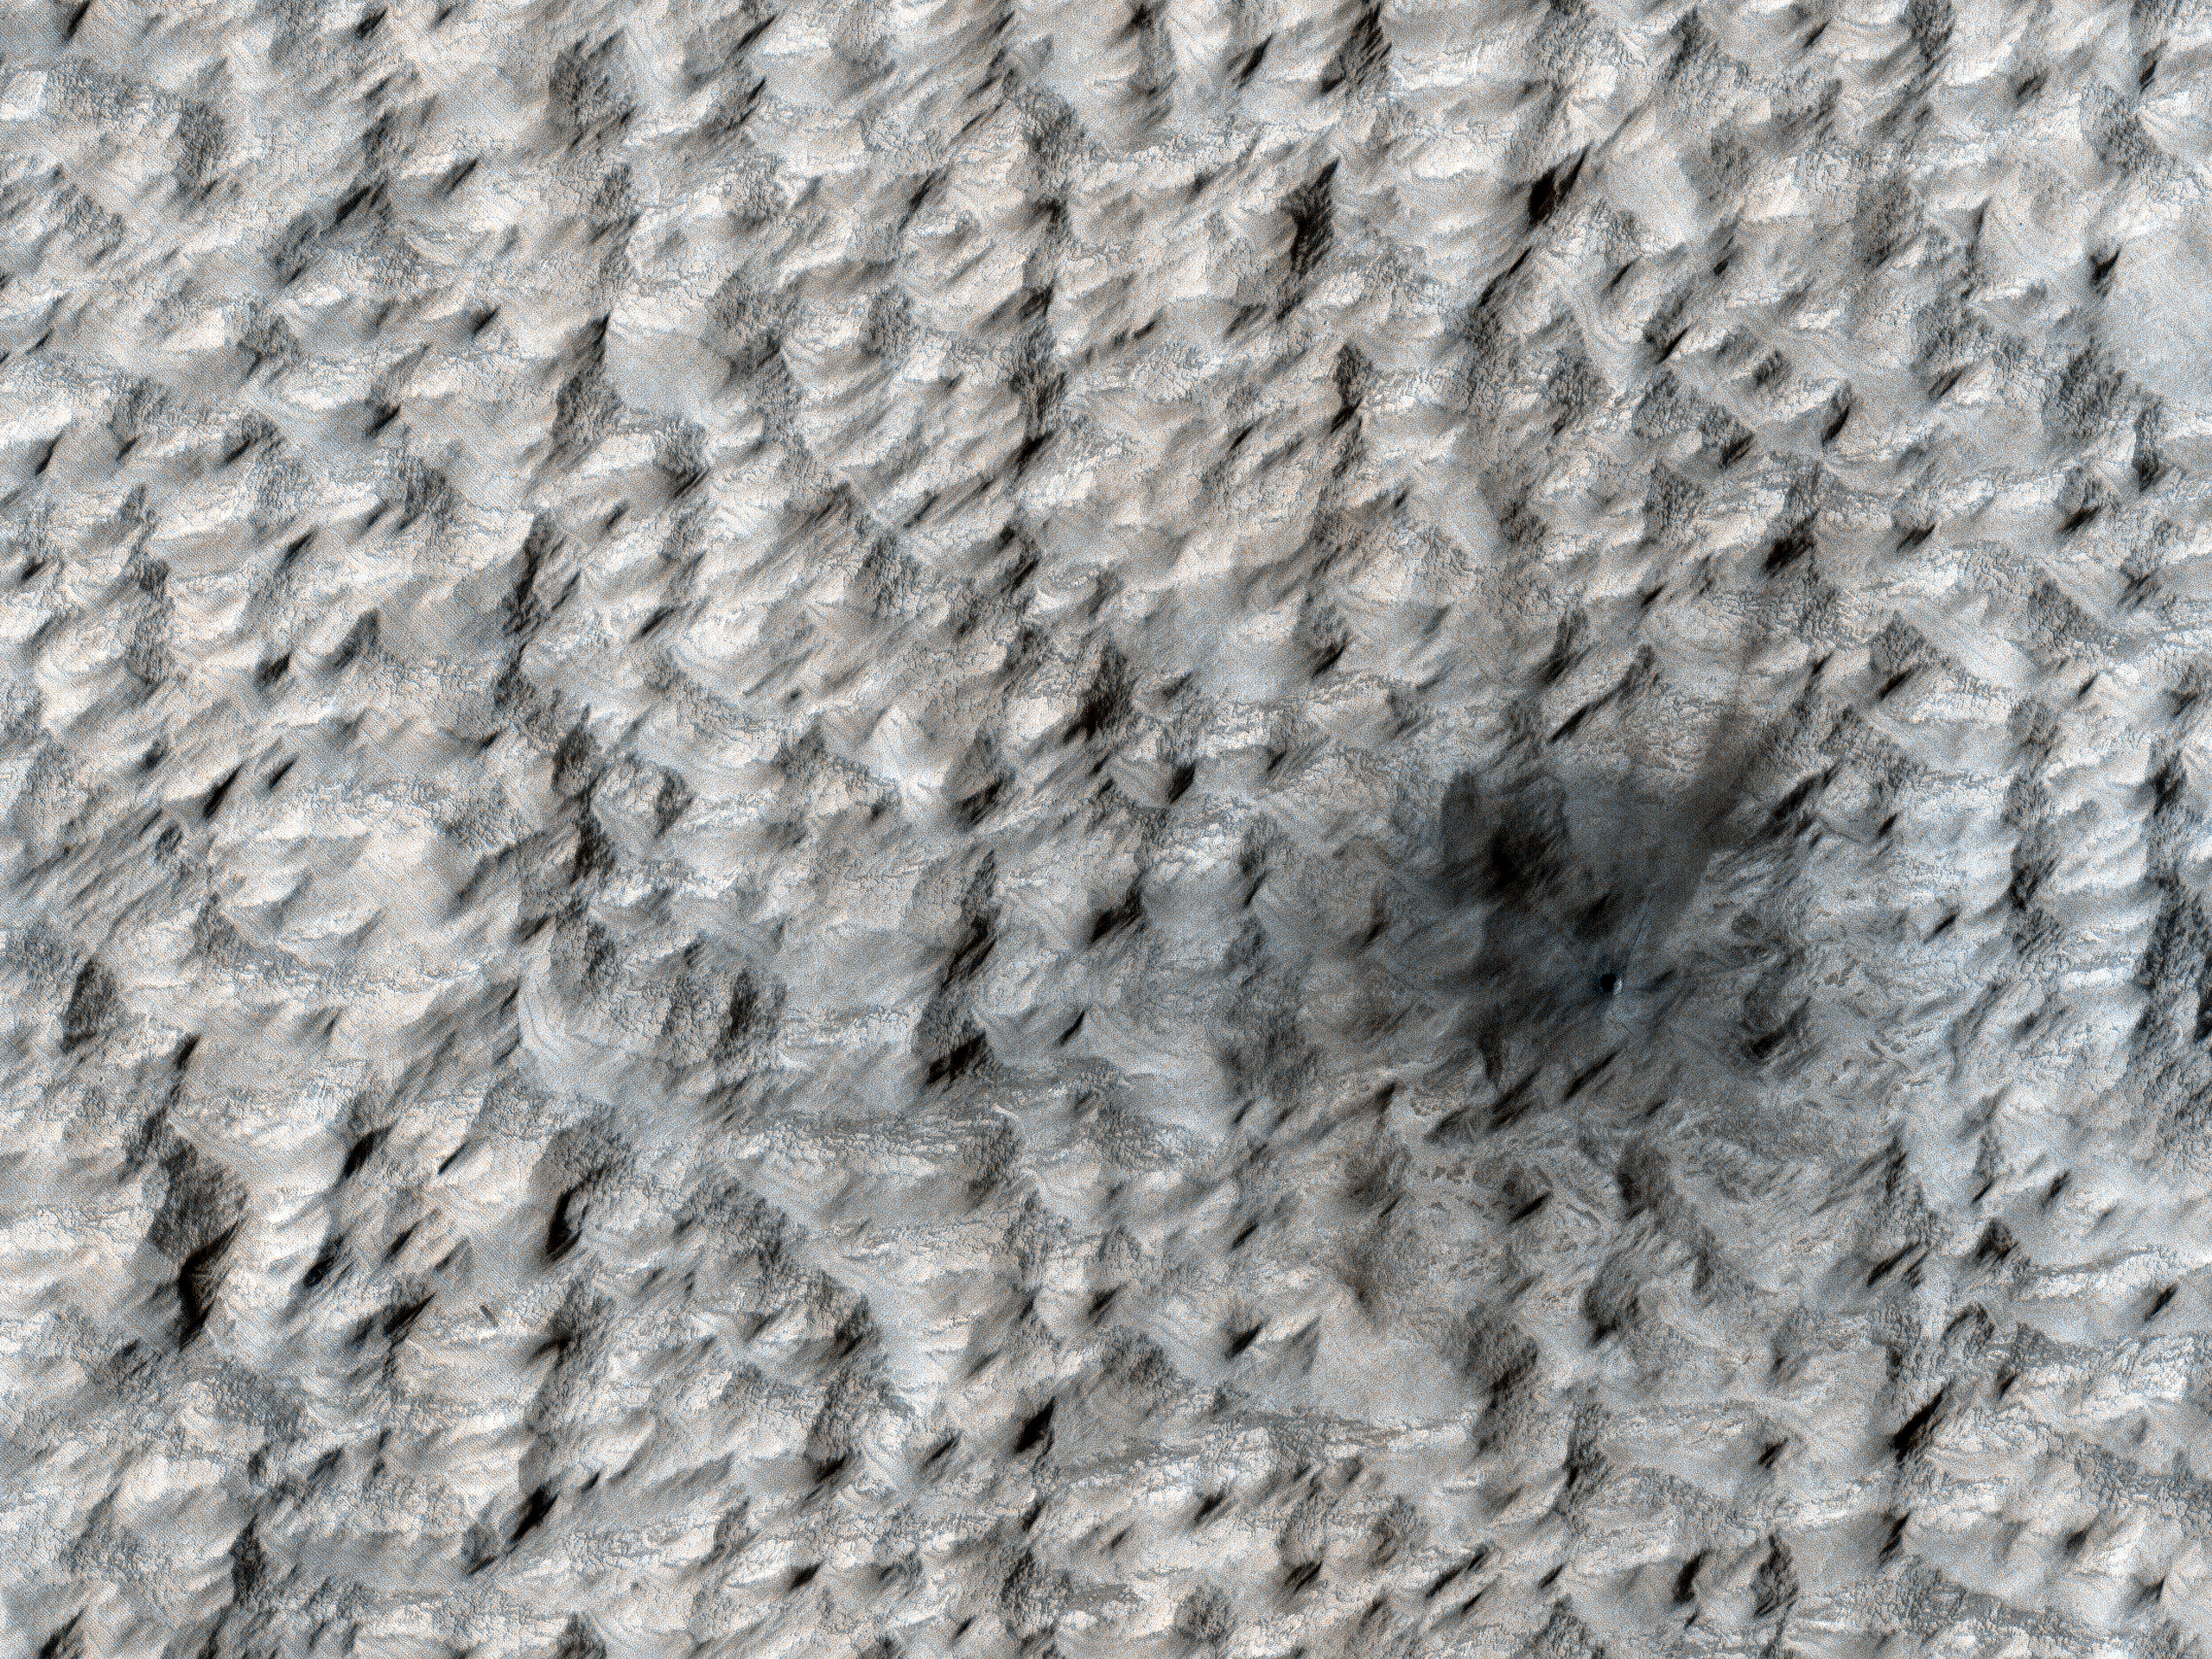 A New Crater on Mars